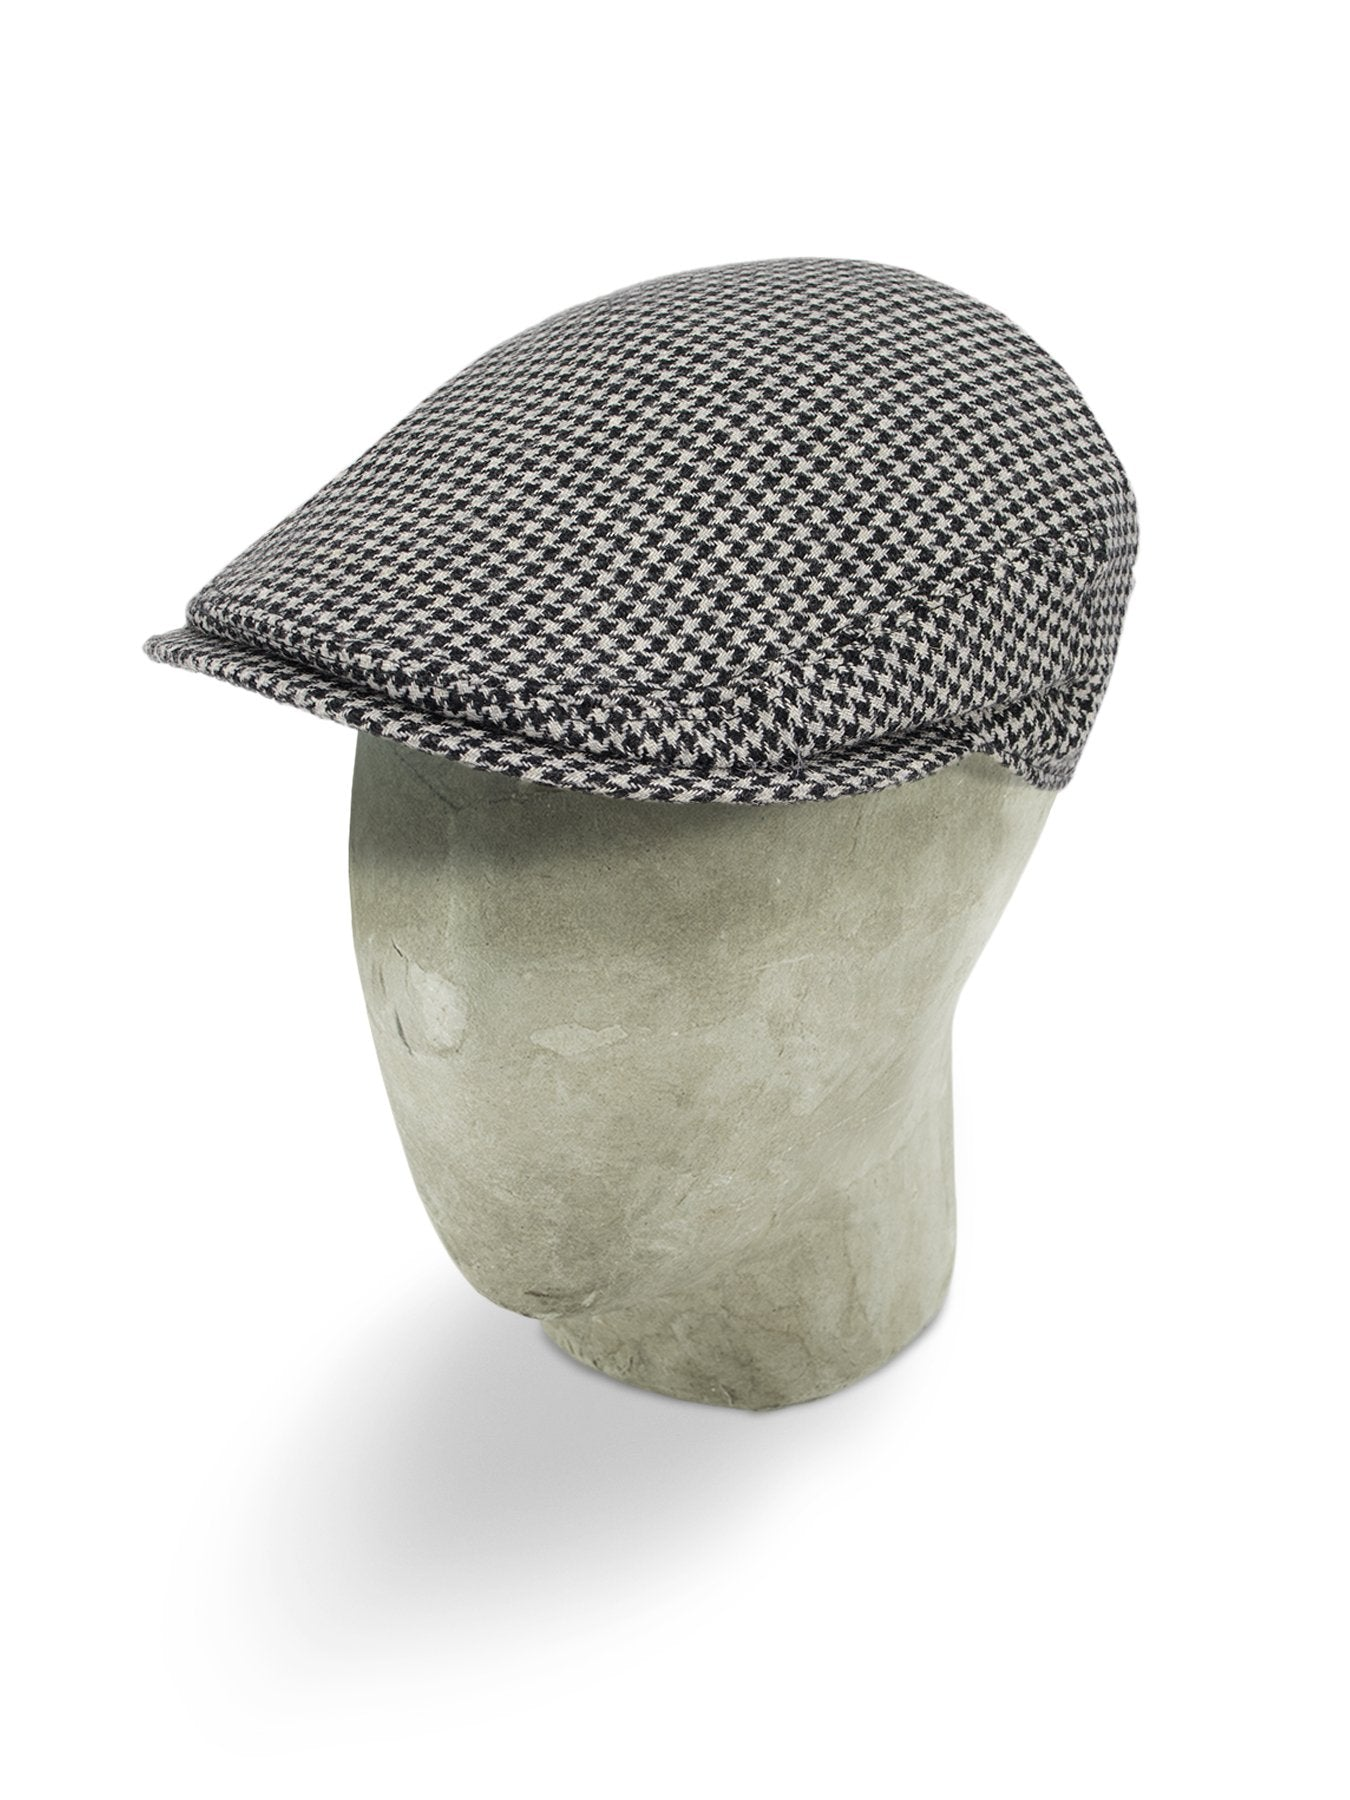 acfbd5afe9130 Black Houndstooth Check Cashmere Flat Cap. Tap to expand